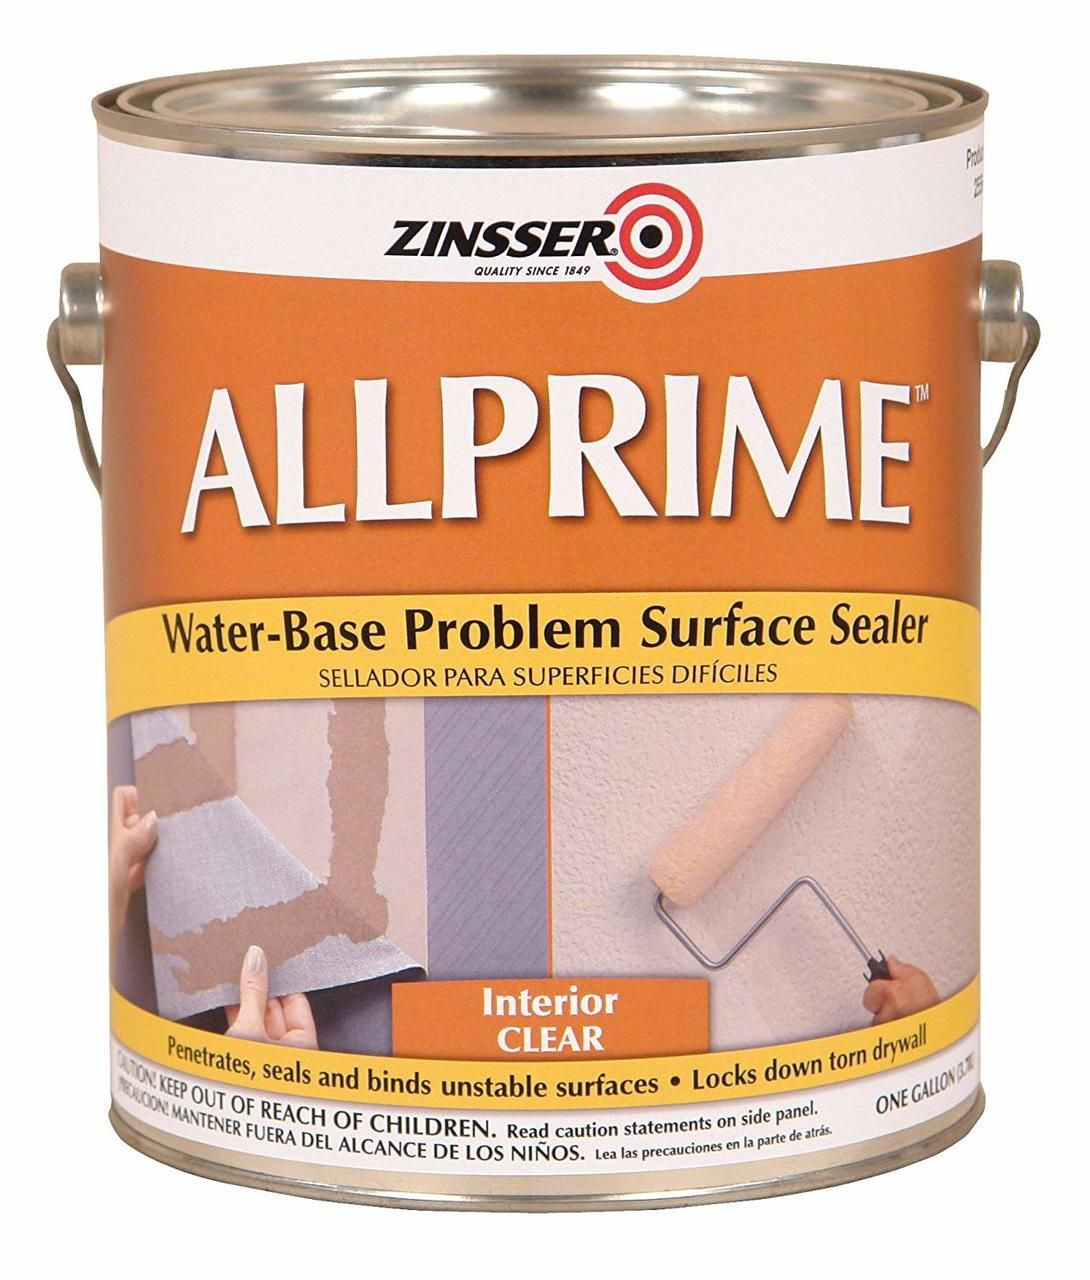 Zinsser Allprime Gardz Problem Surface Sealer 1 Gallon Paint Supplies Sealer Surface